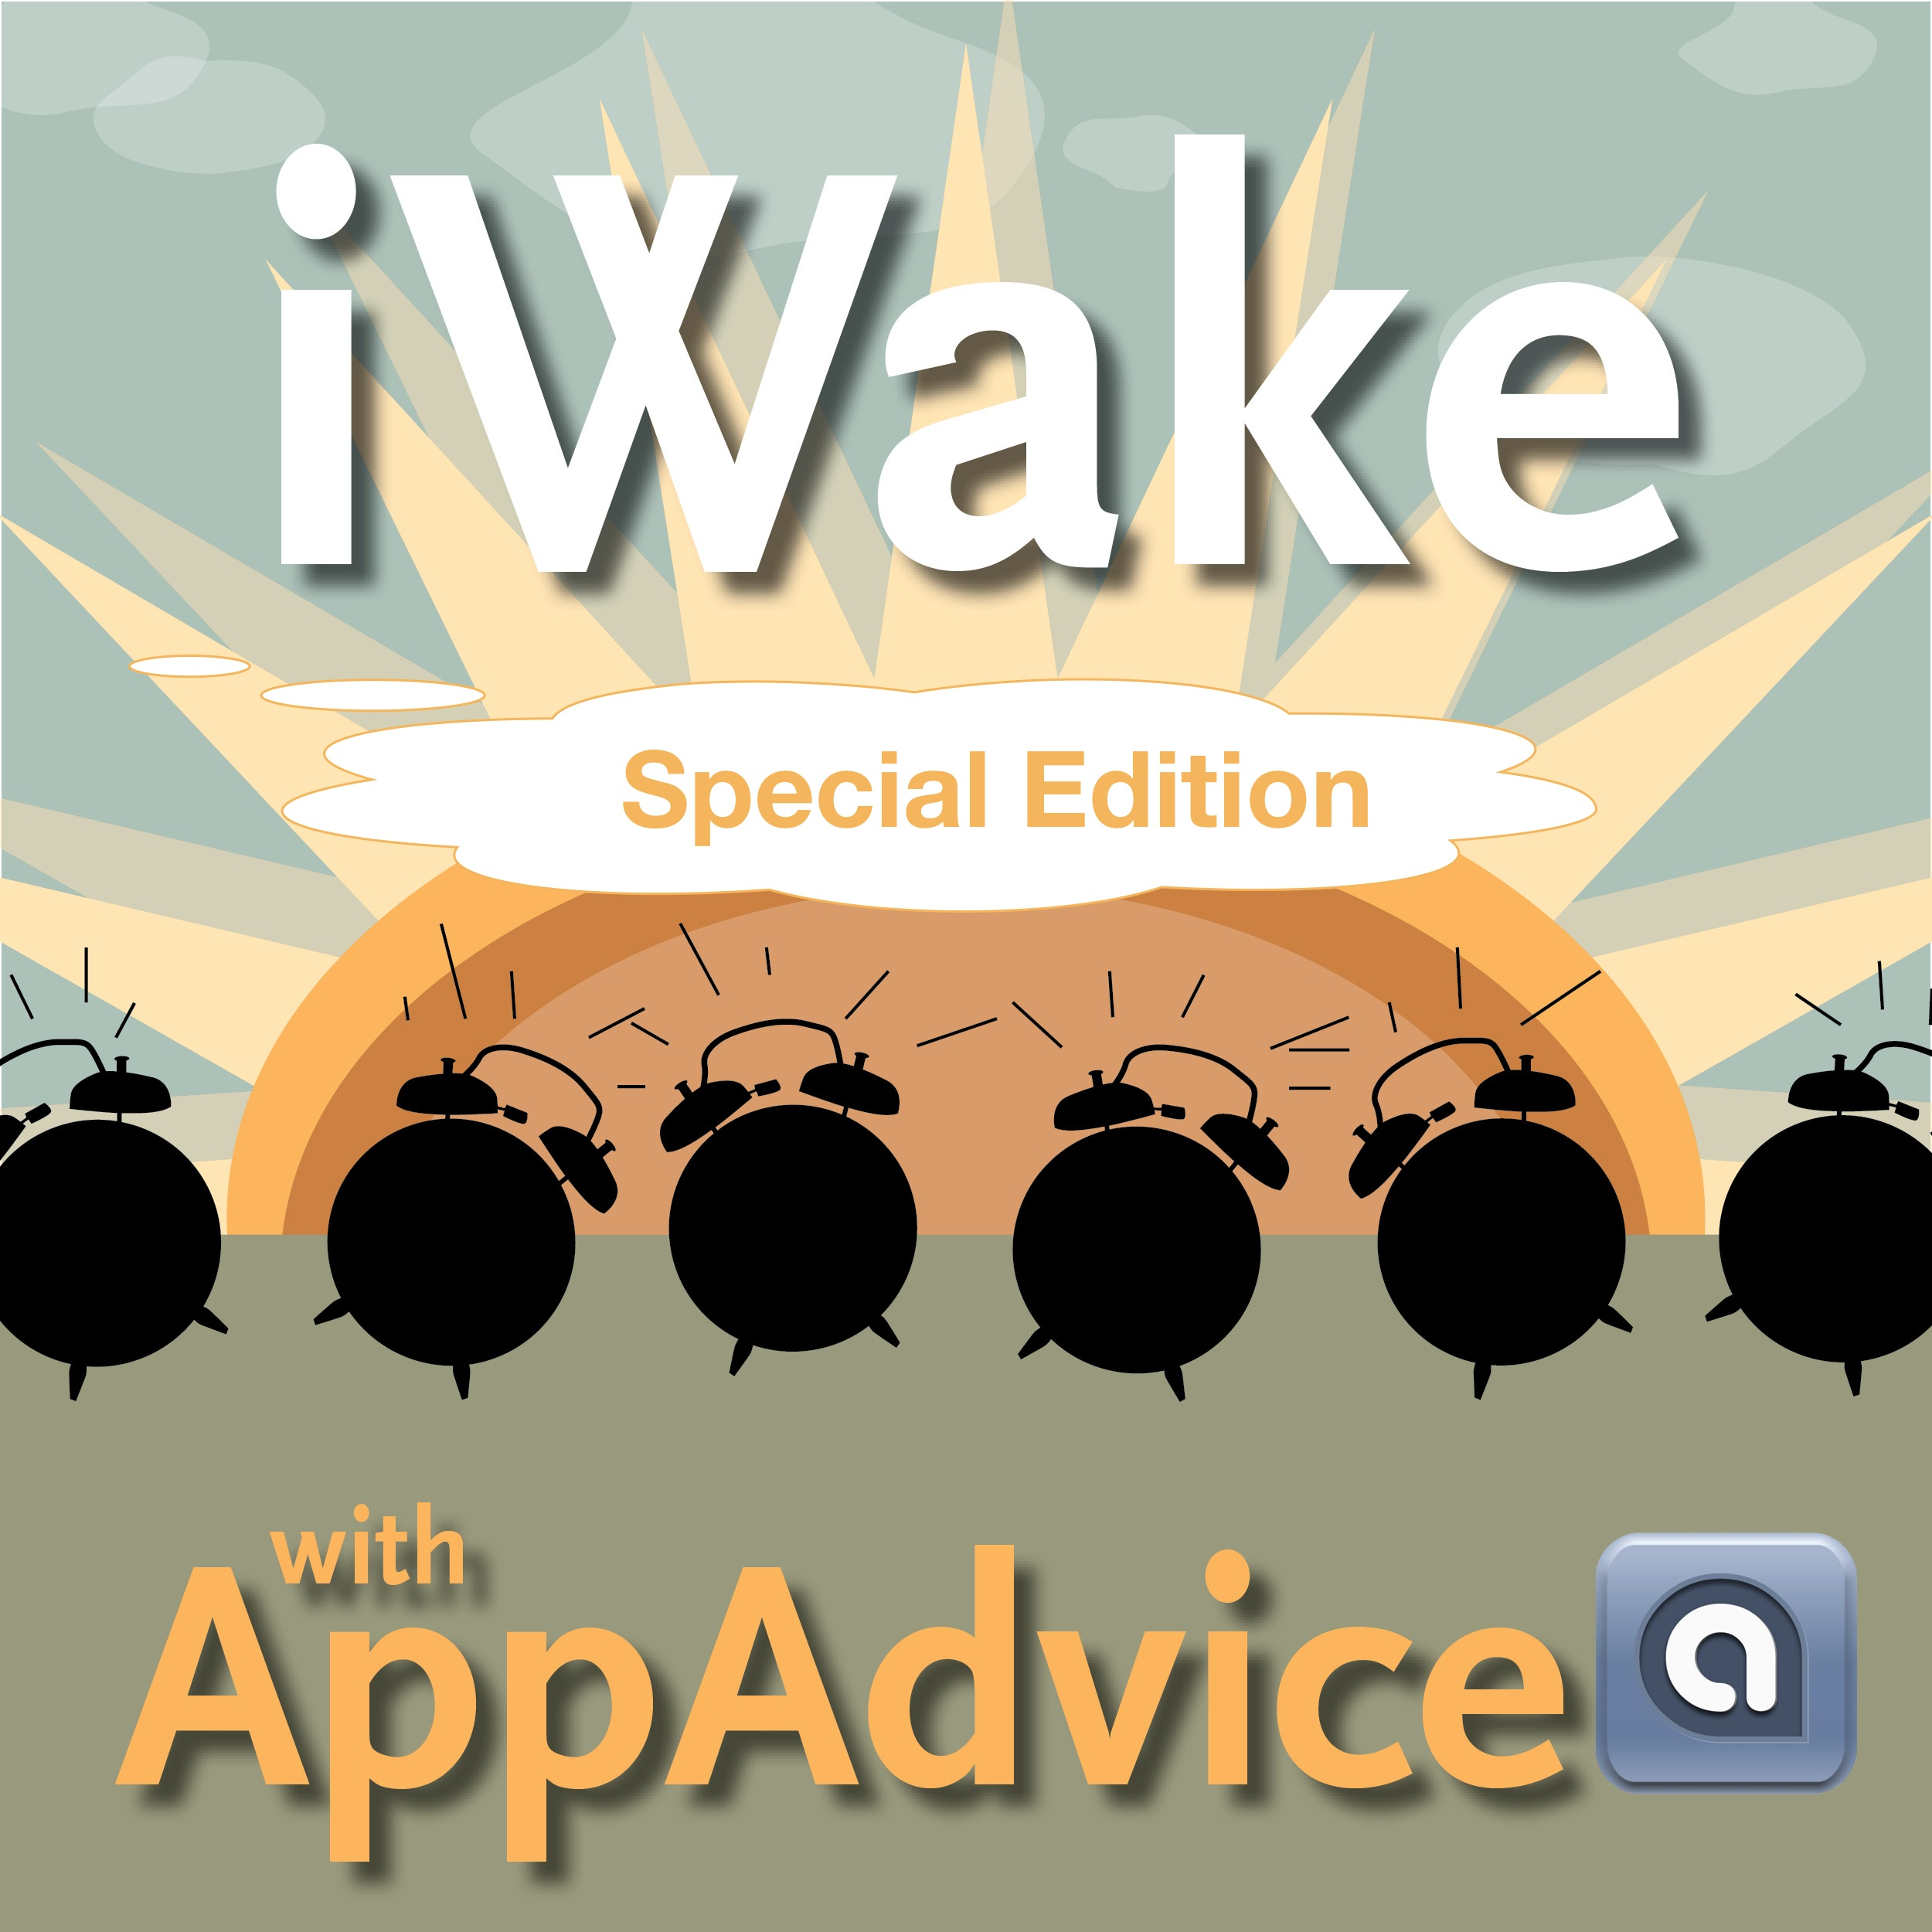 iWake With AppAdvice SE: Steve Jobs